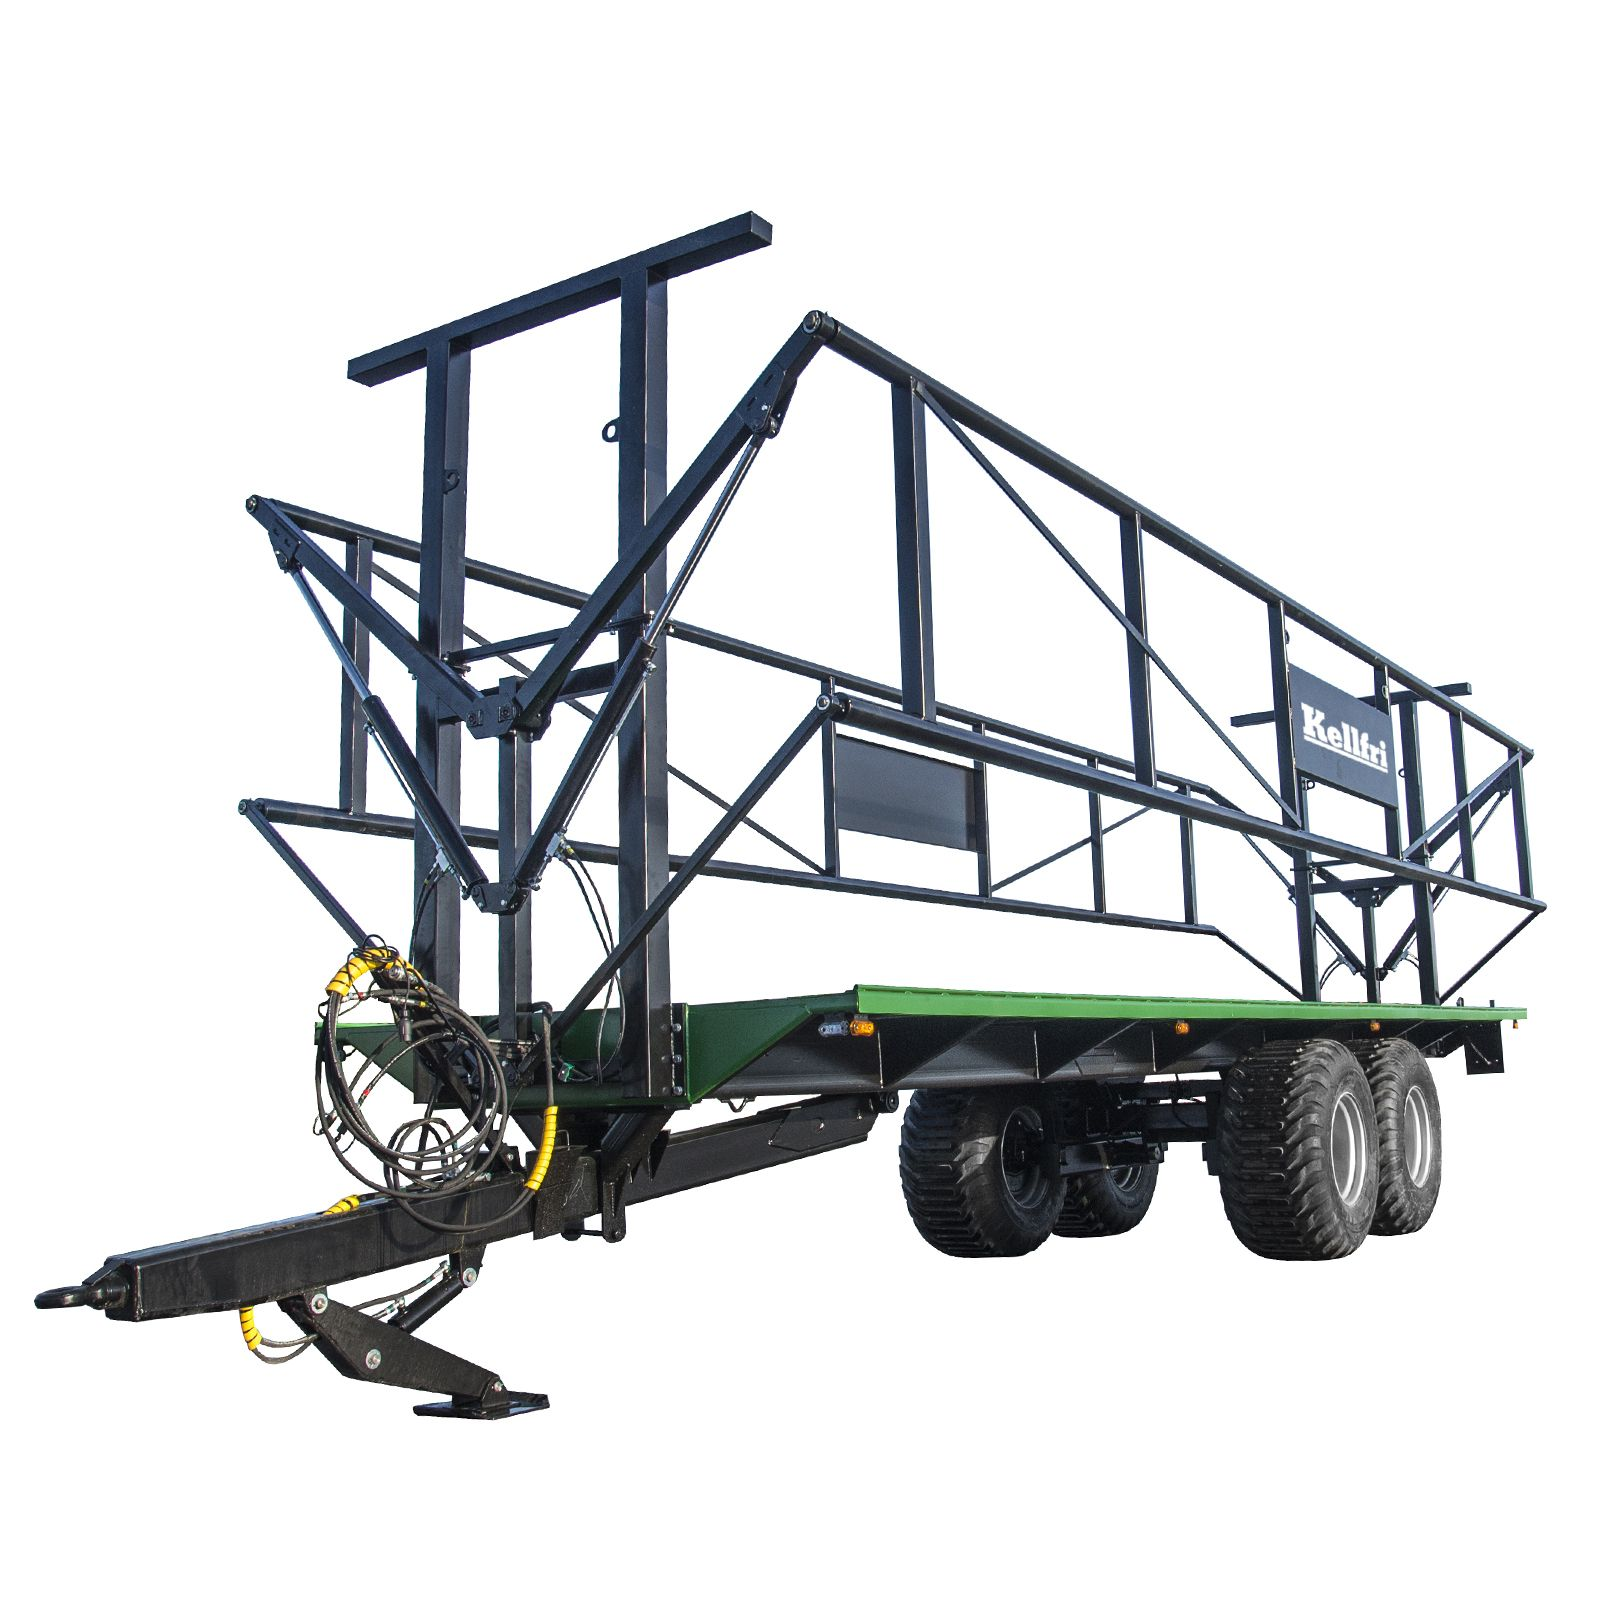 14/18T Trailer with clamp sidesLearn More